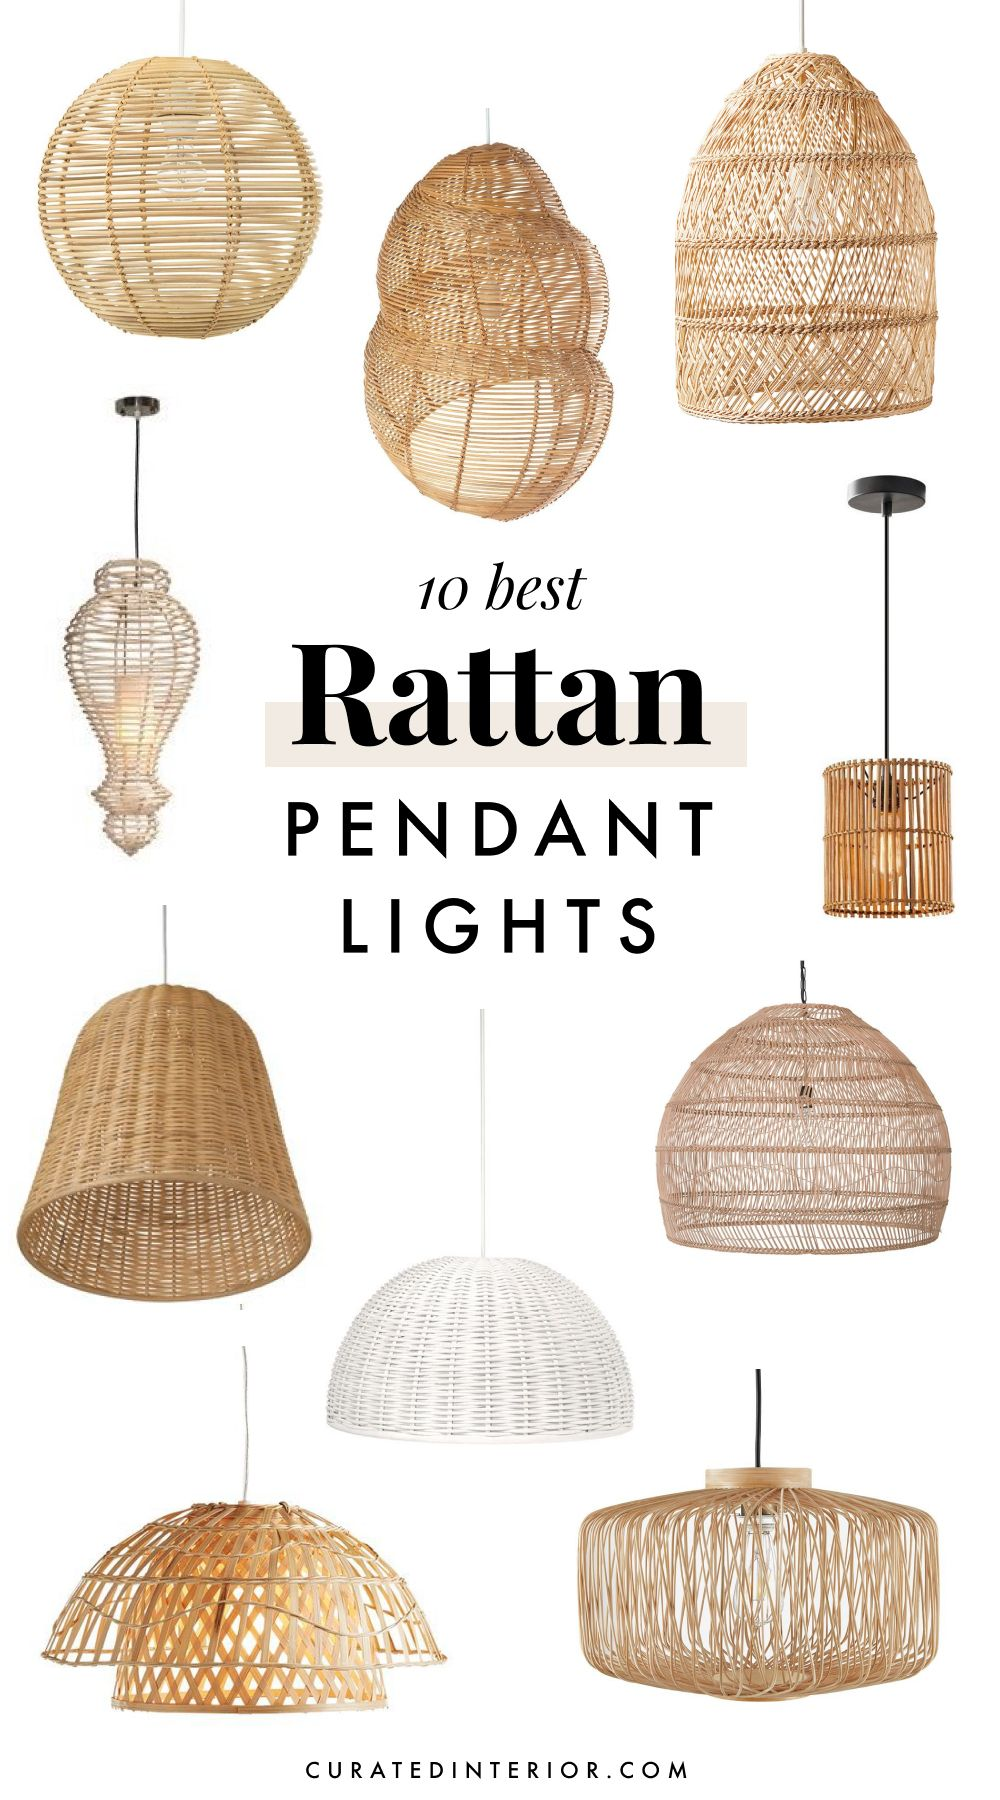 10 Best Rattan Pendant Lights for Your Beach Home or Coastal Kitchen